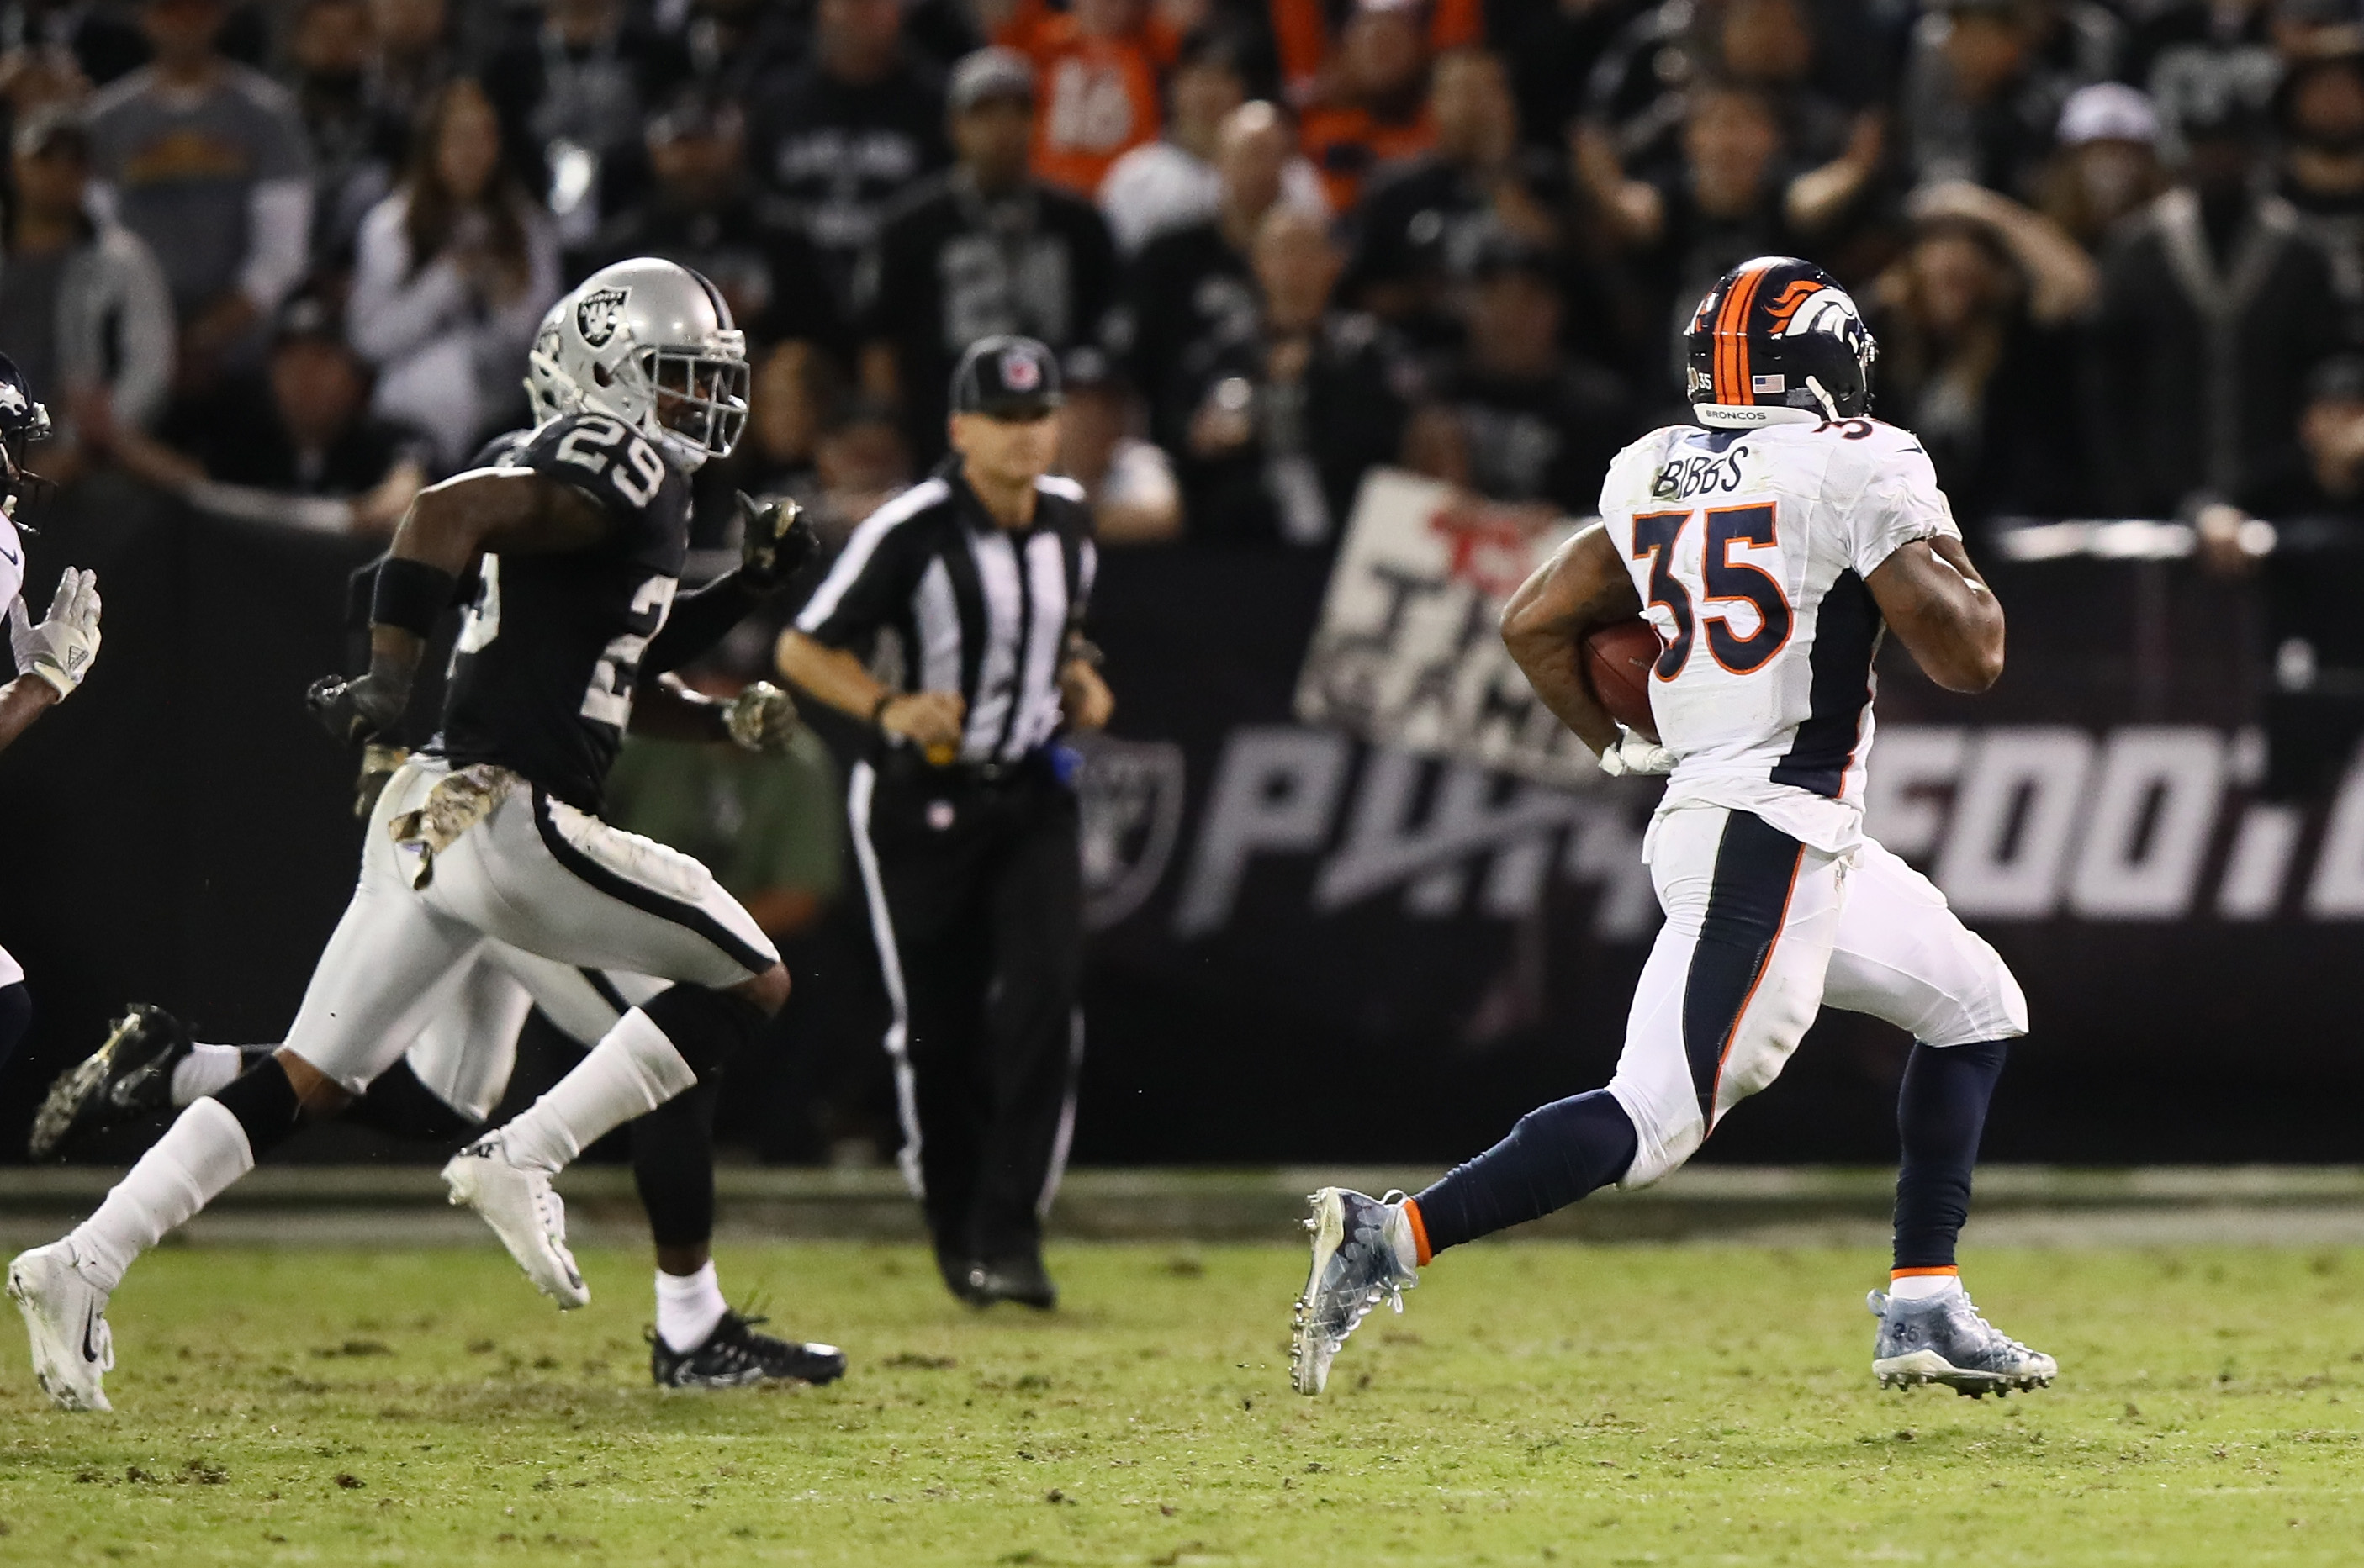 Kapri Bibbs #35 of the Denver Broncos carries the ball against the Oakland Raiders at Oakland-Alameda County Coliseum on November 6, 2016 in Oakland, California. (Photo by Ezra Shaw/Getty Images)